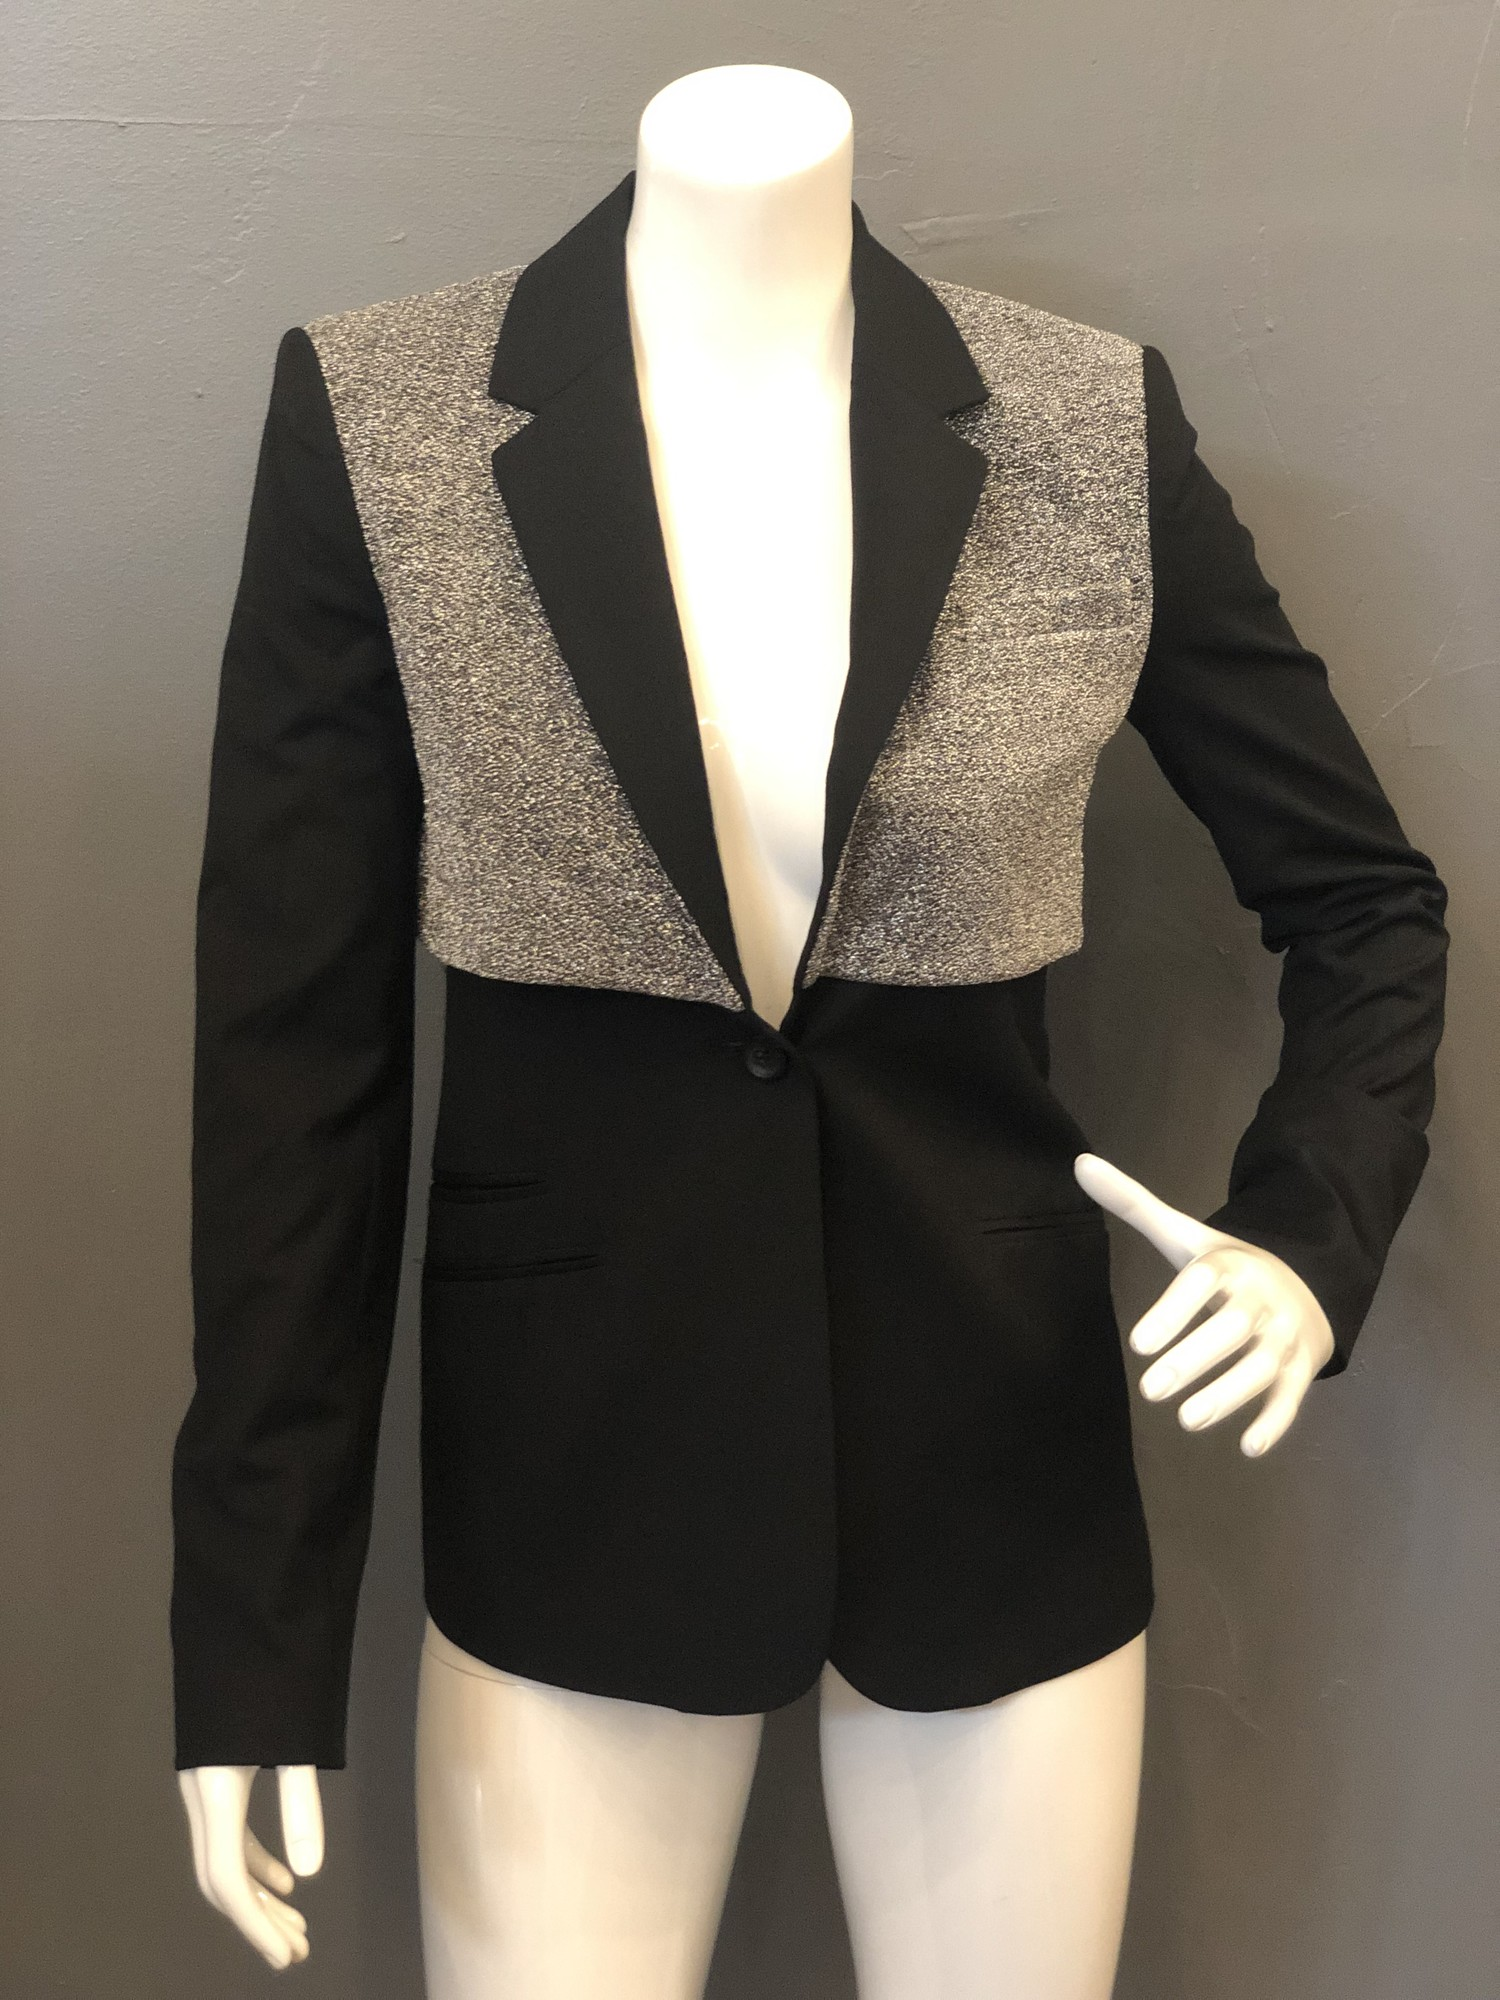 Elizabeth & James double rex Blazer, Slvr/blk, Size: 0<br />  new with tags<br /> 64% acrylic<br /> 20% nylon<br /> 8% polyester<br /> 2% elastane